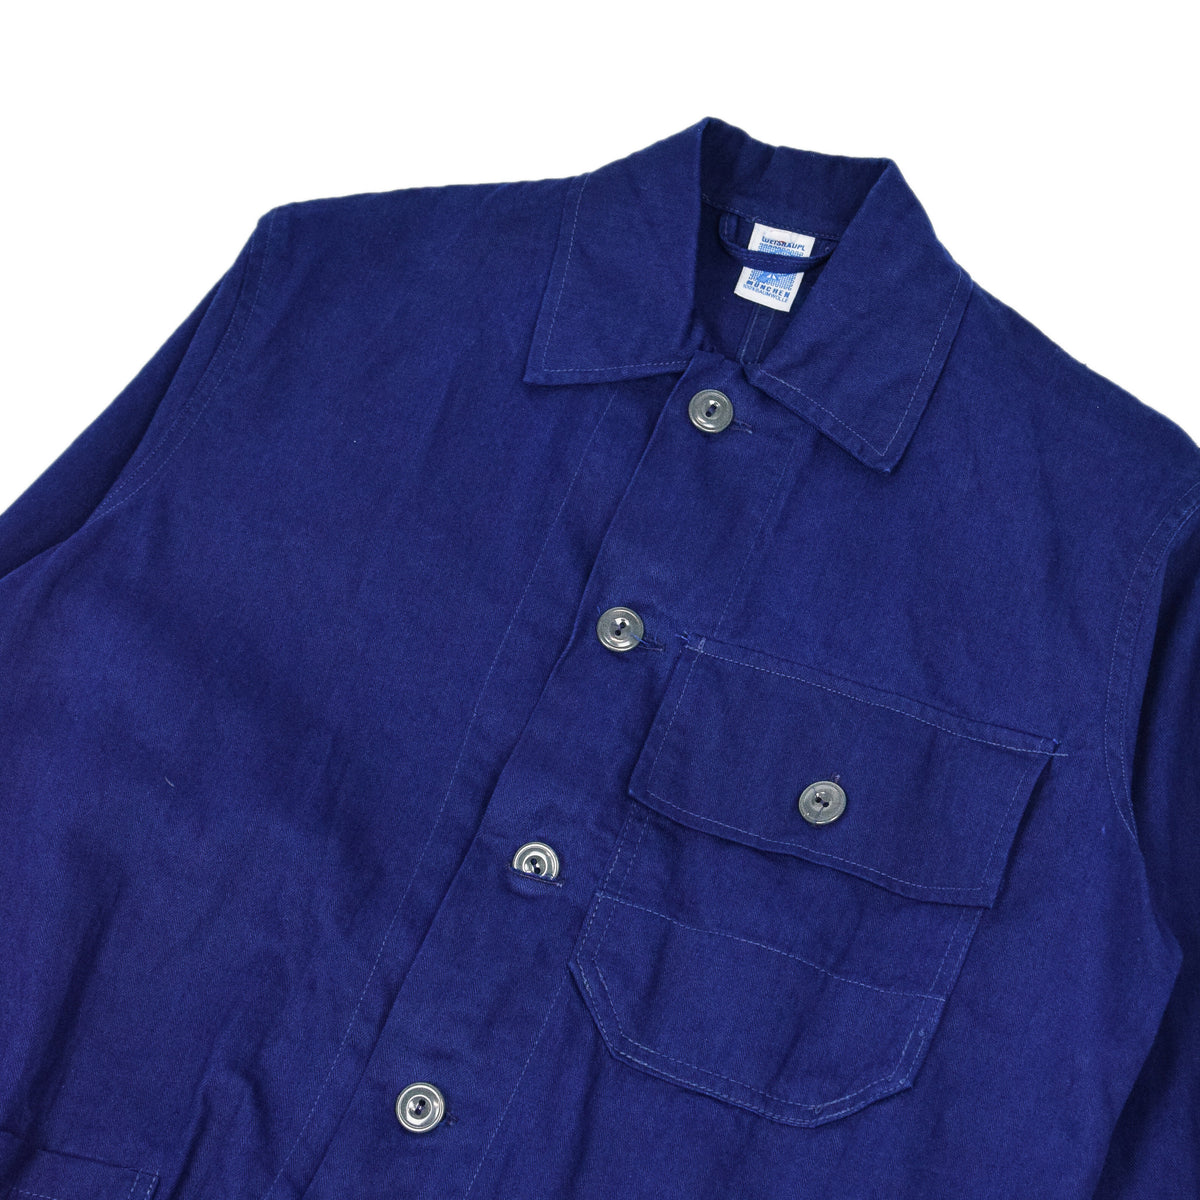 Vintage Indigo Blue French Style Worker Sanforized Herringbone Chore Jacket S chest